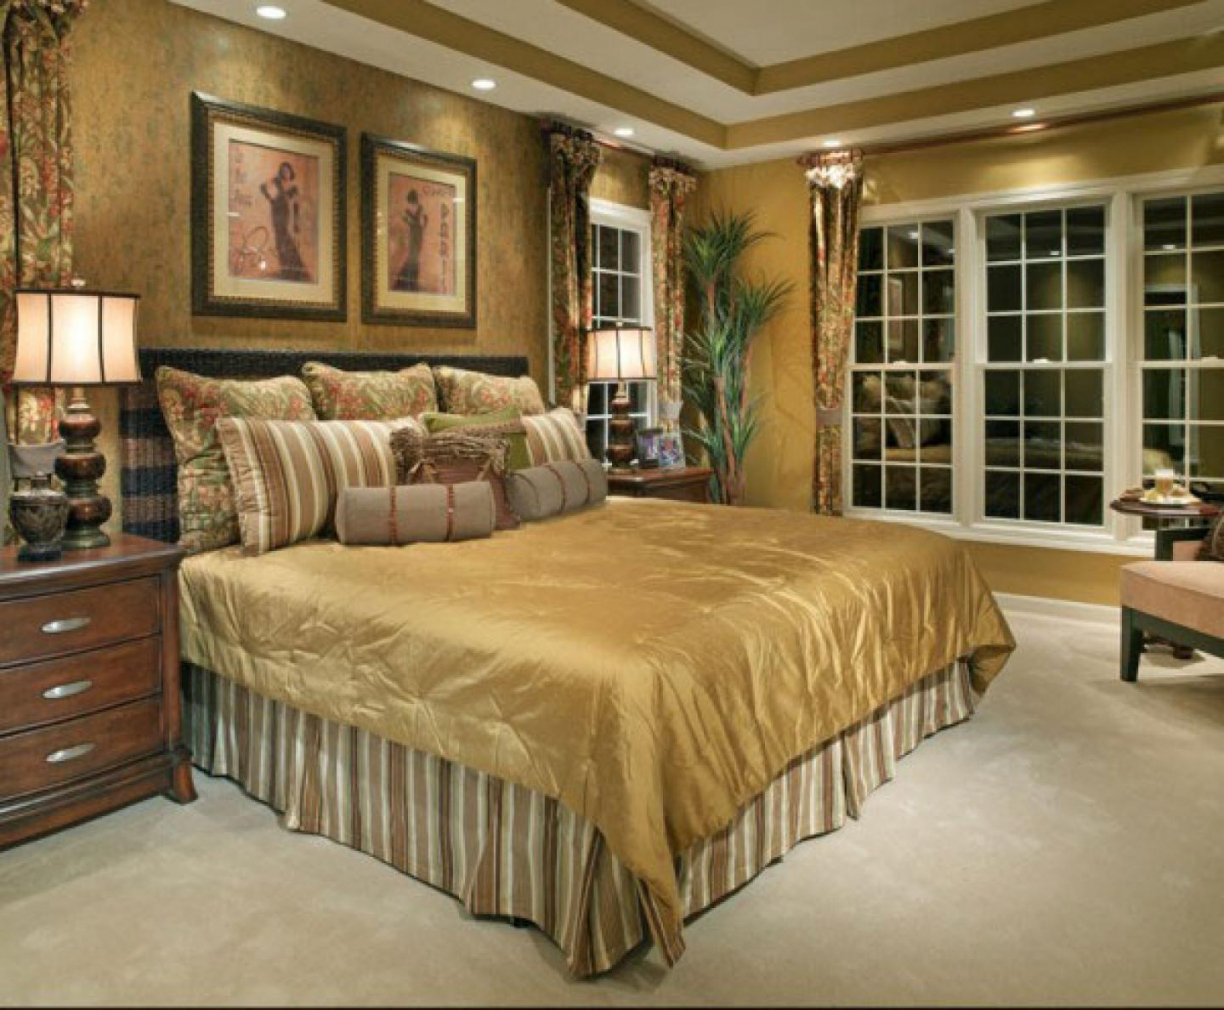 traditional bedroom decorating ideas photo - 7